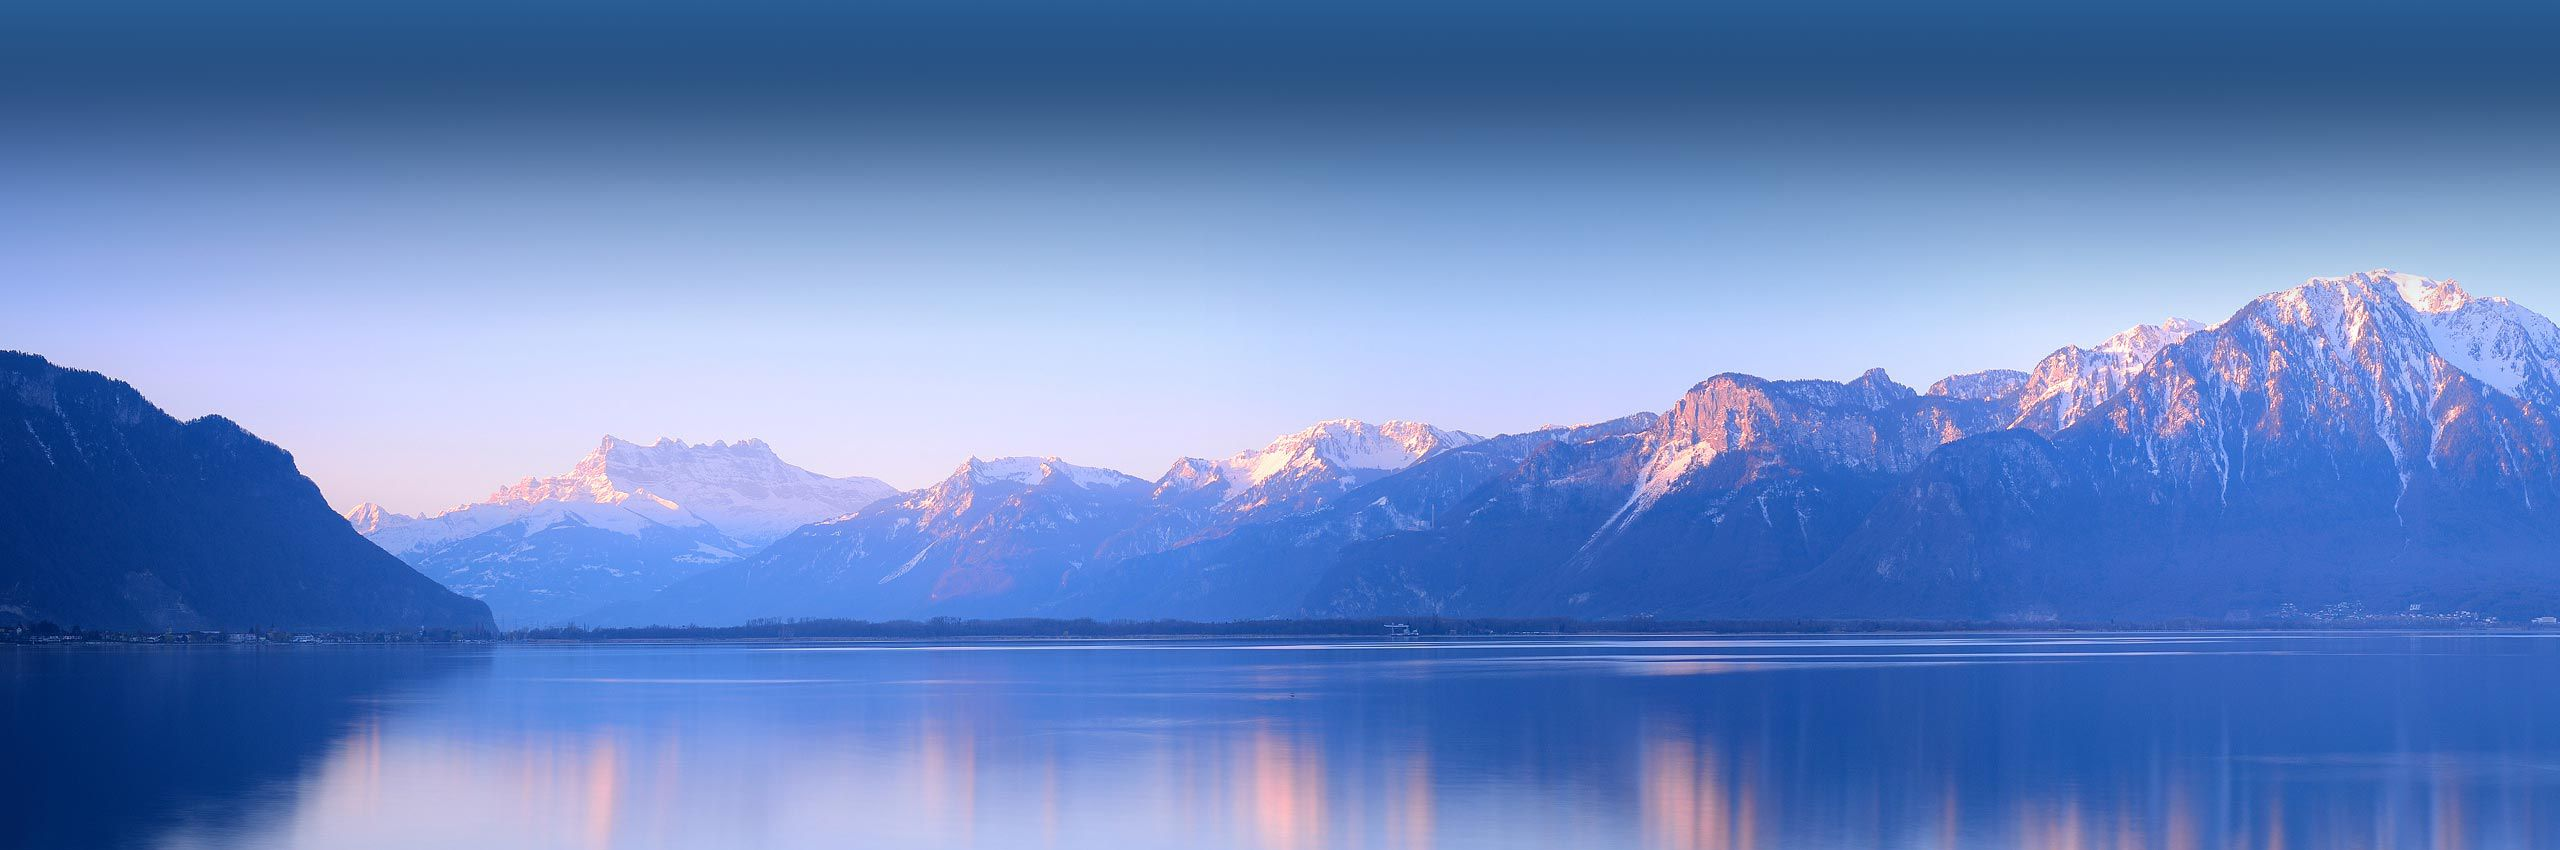 swiss alps and lake geneva